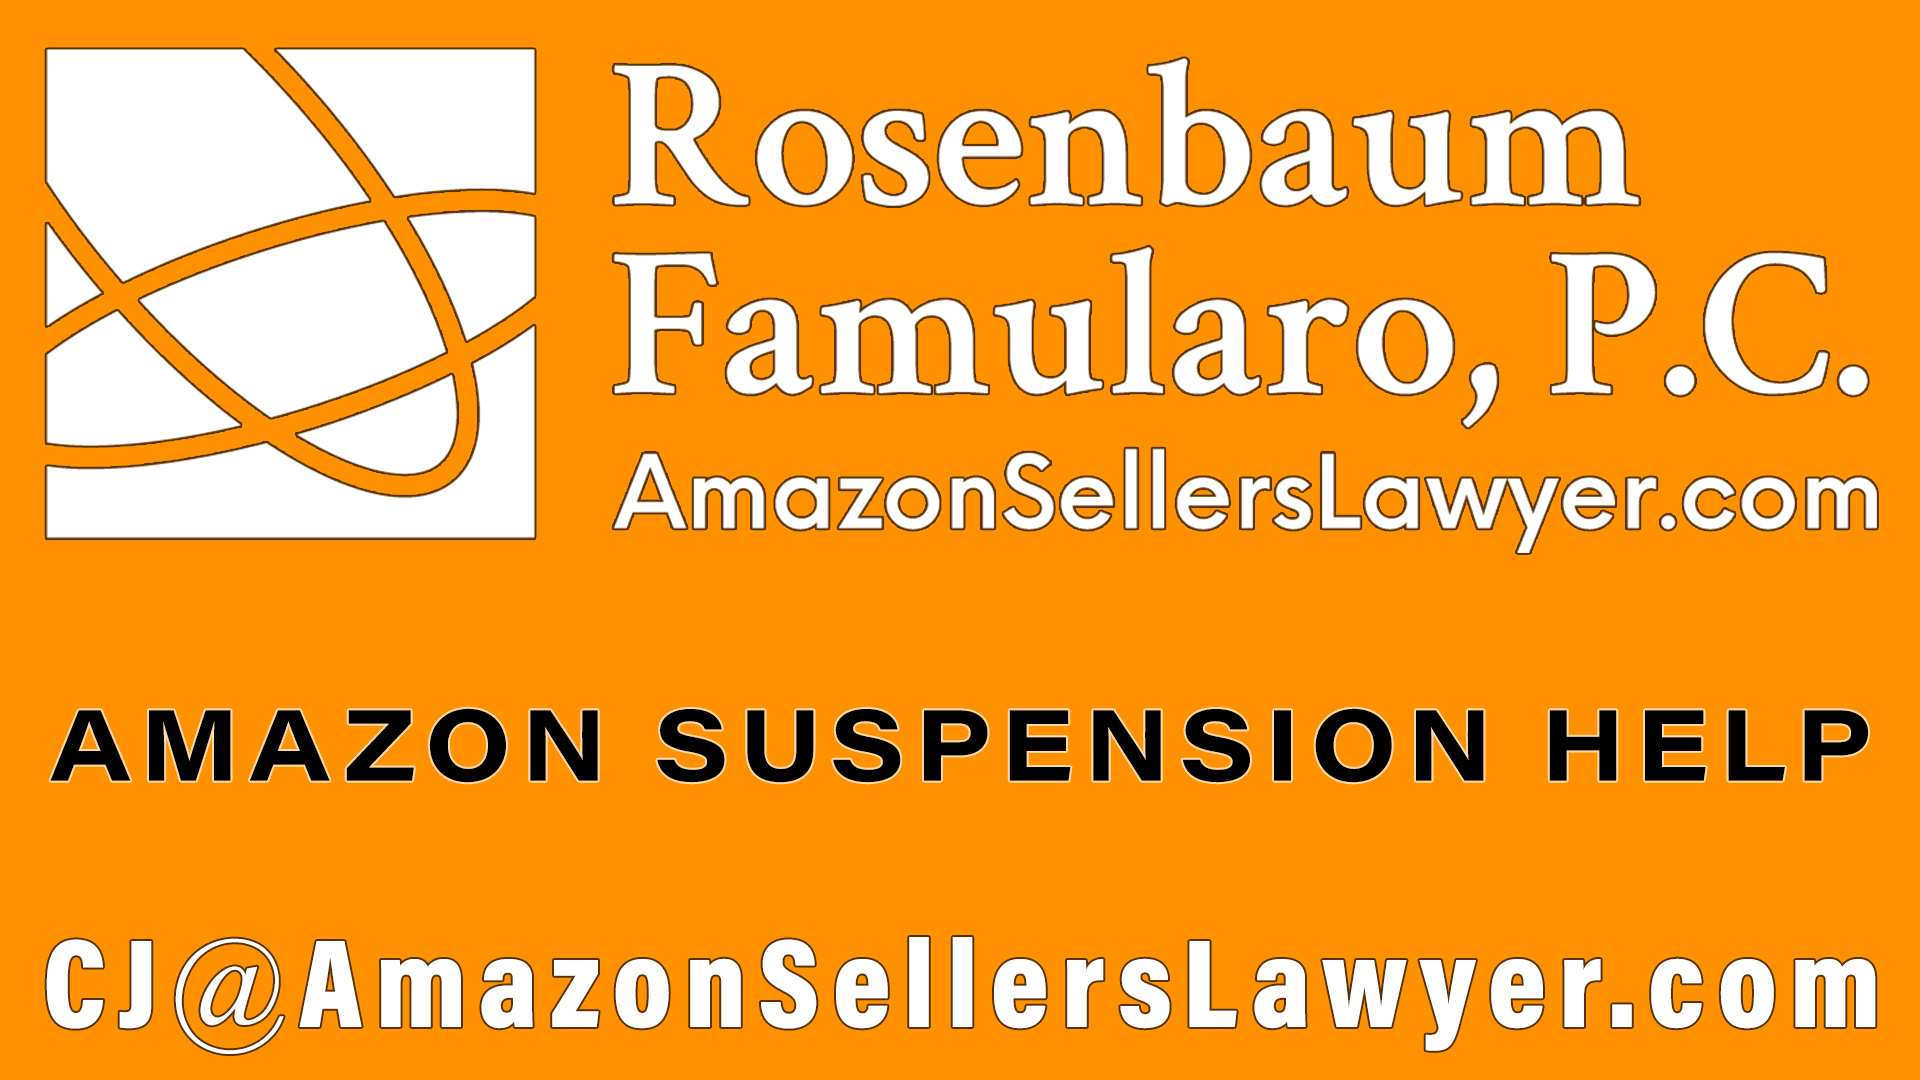 Amazon suspension help